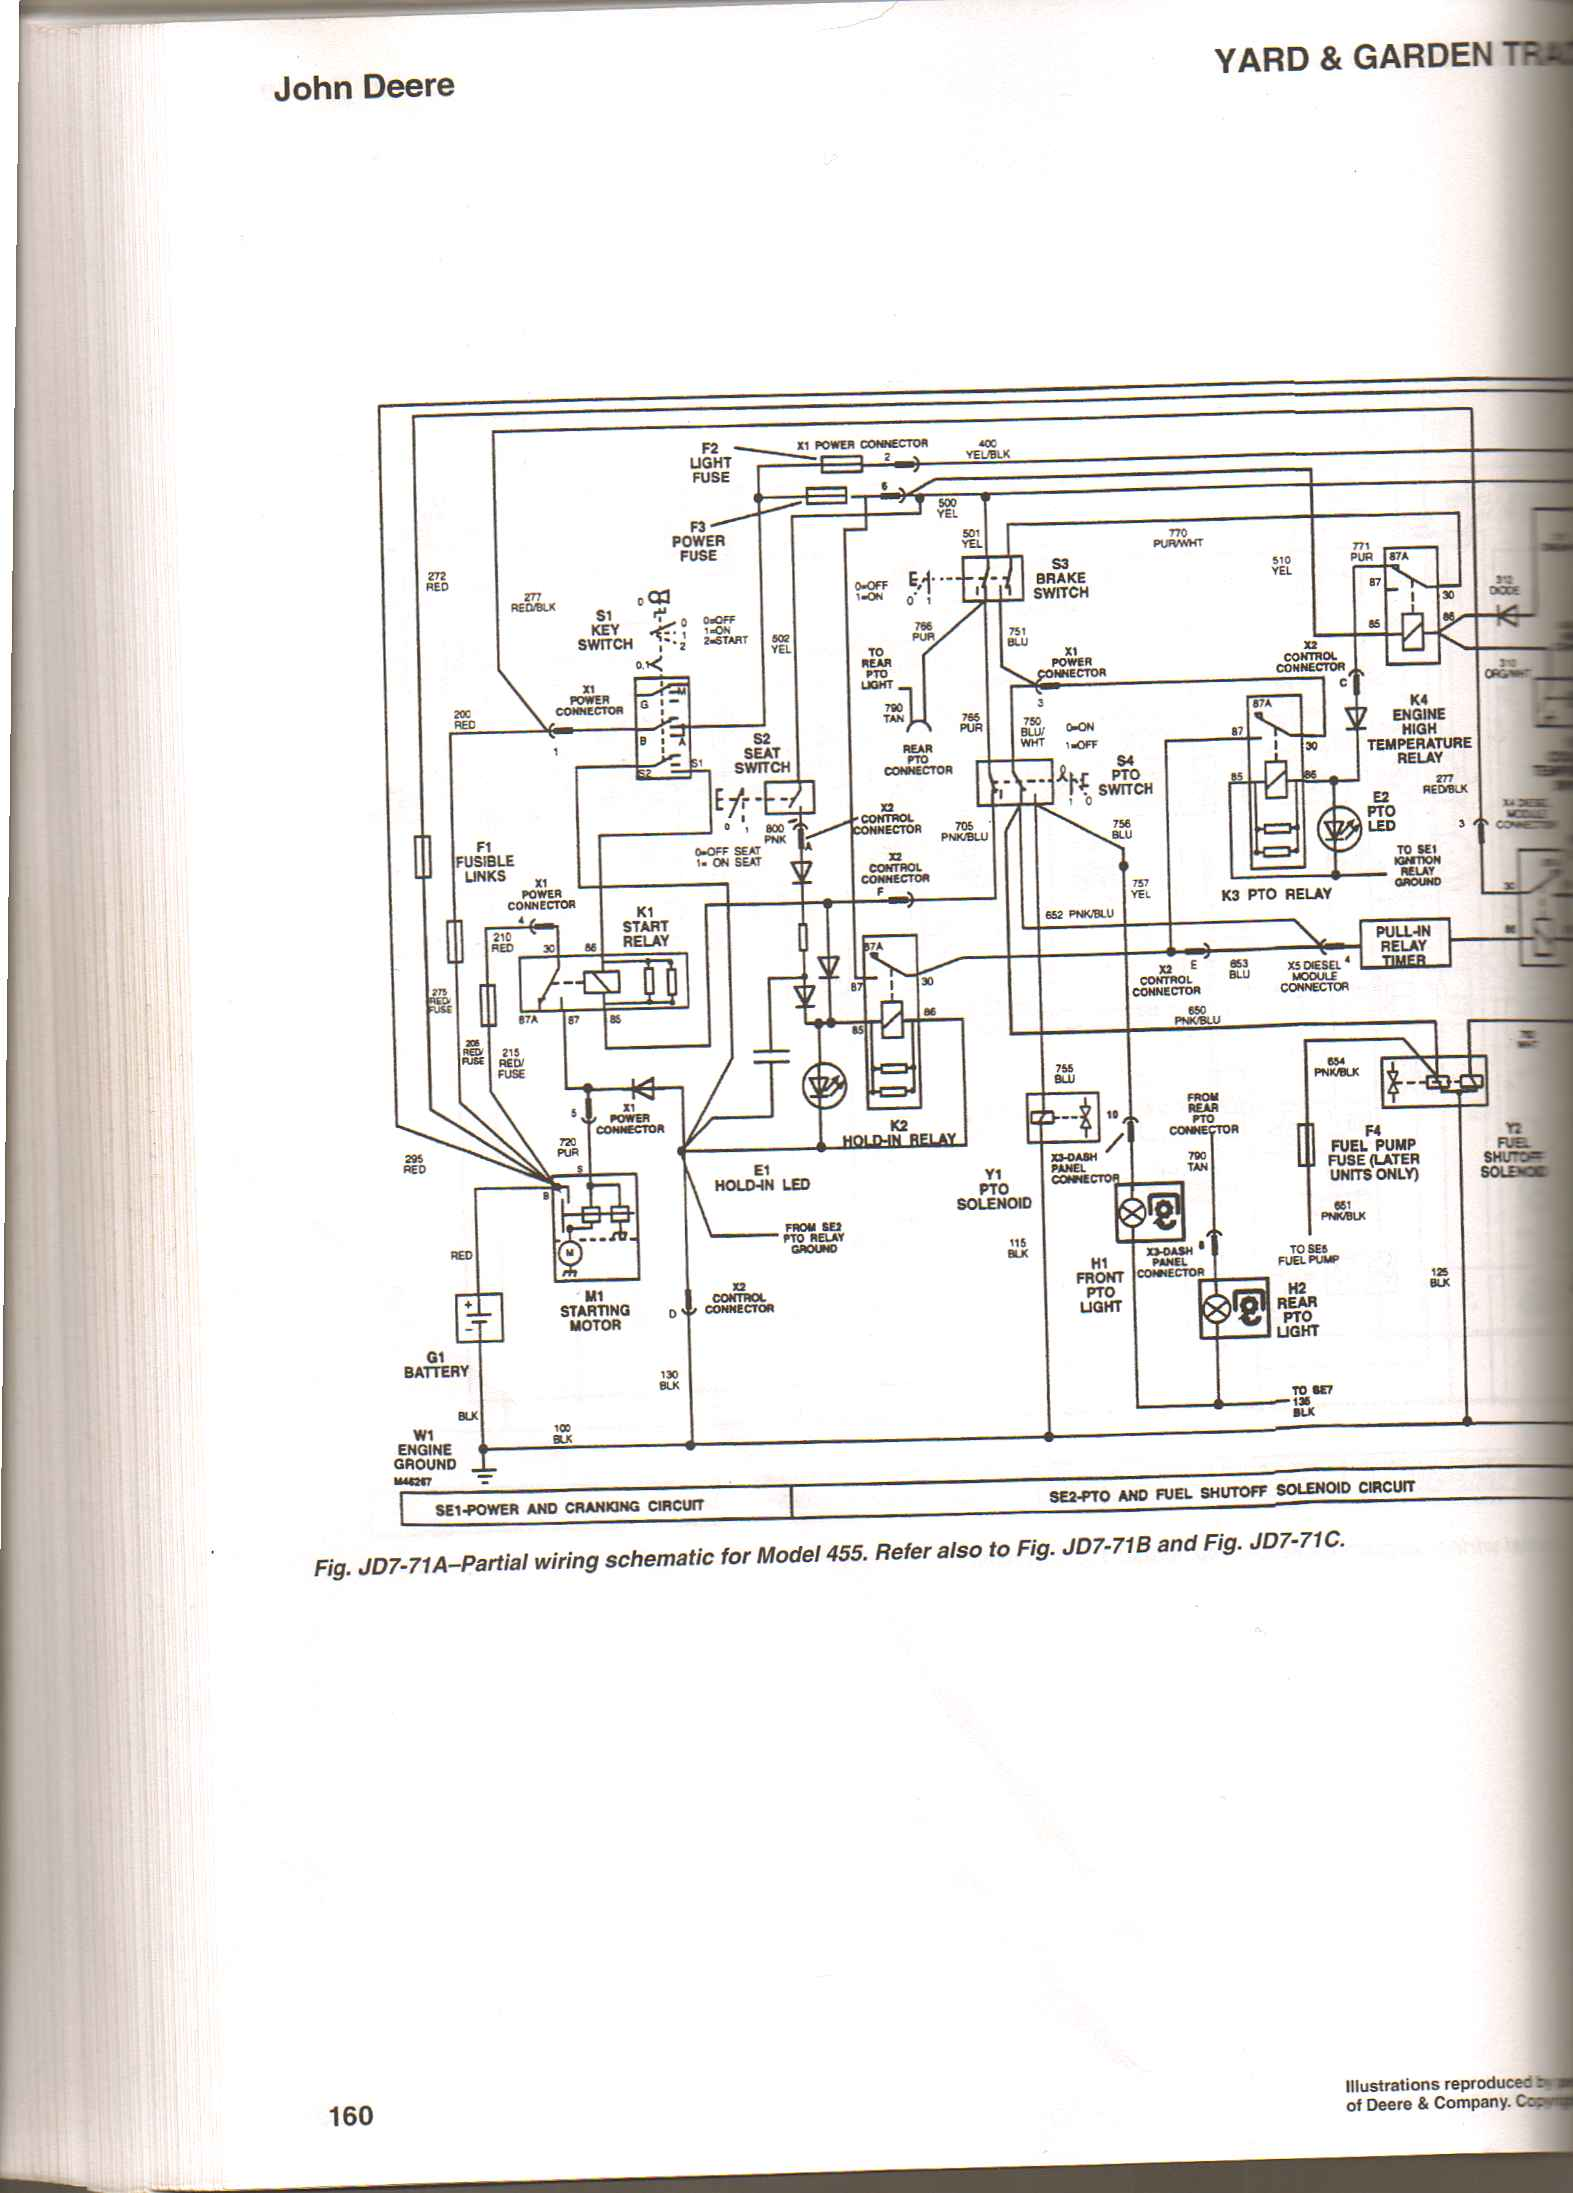 John Deere 455 Wiring Diagram And Schematics Diagrams Tractor Within 425 445 Source Full Size Image